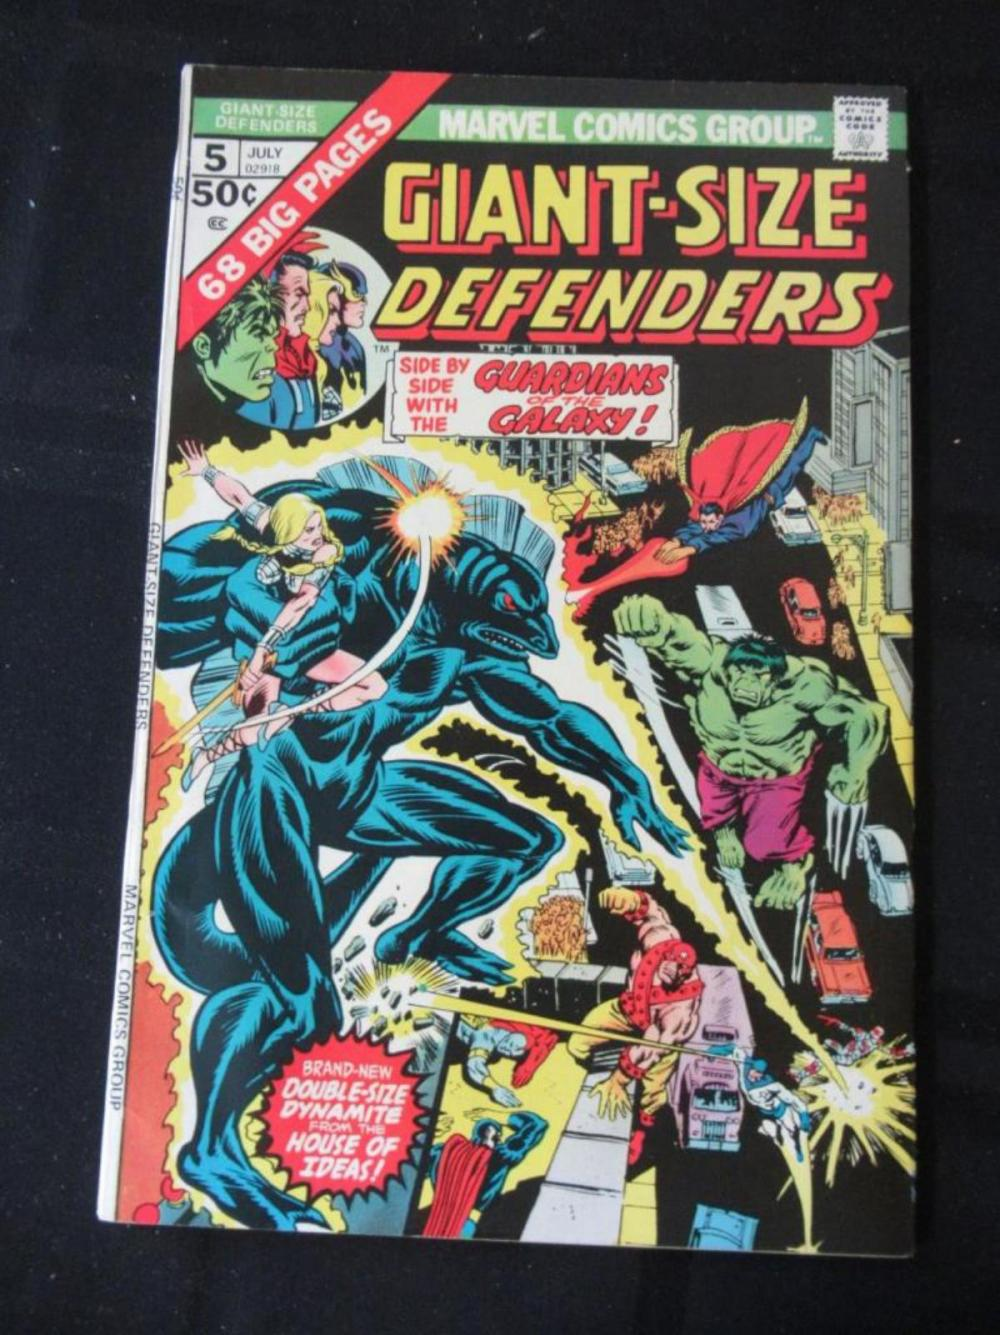 Giant Size Defenders #5 Guardians of the Galaxy